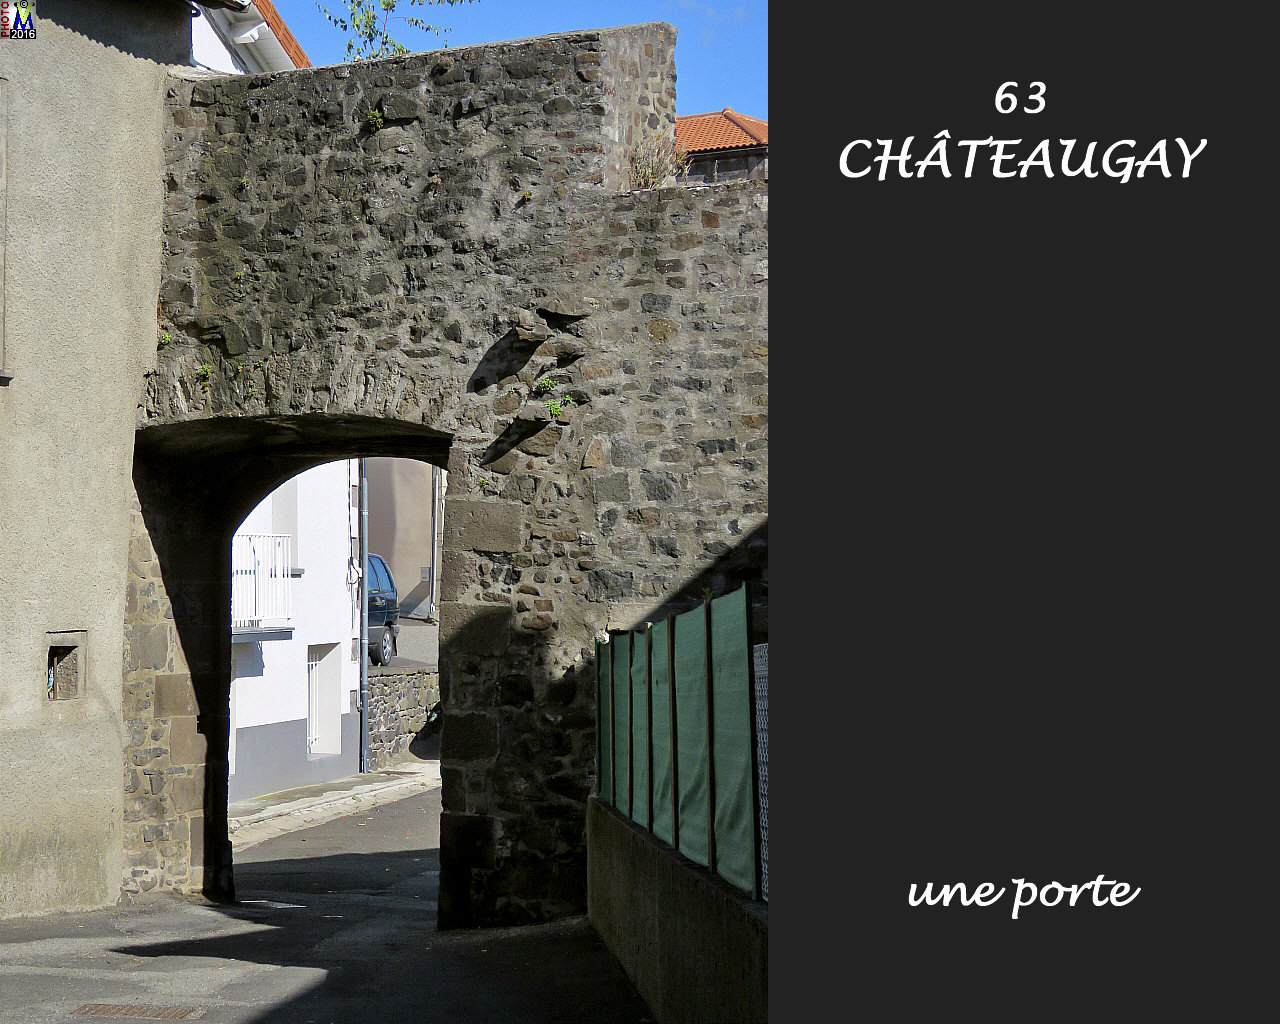 63CHATEAUGAY_porte_102.jpg